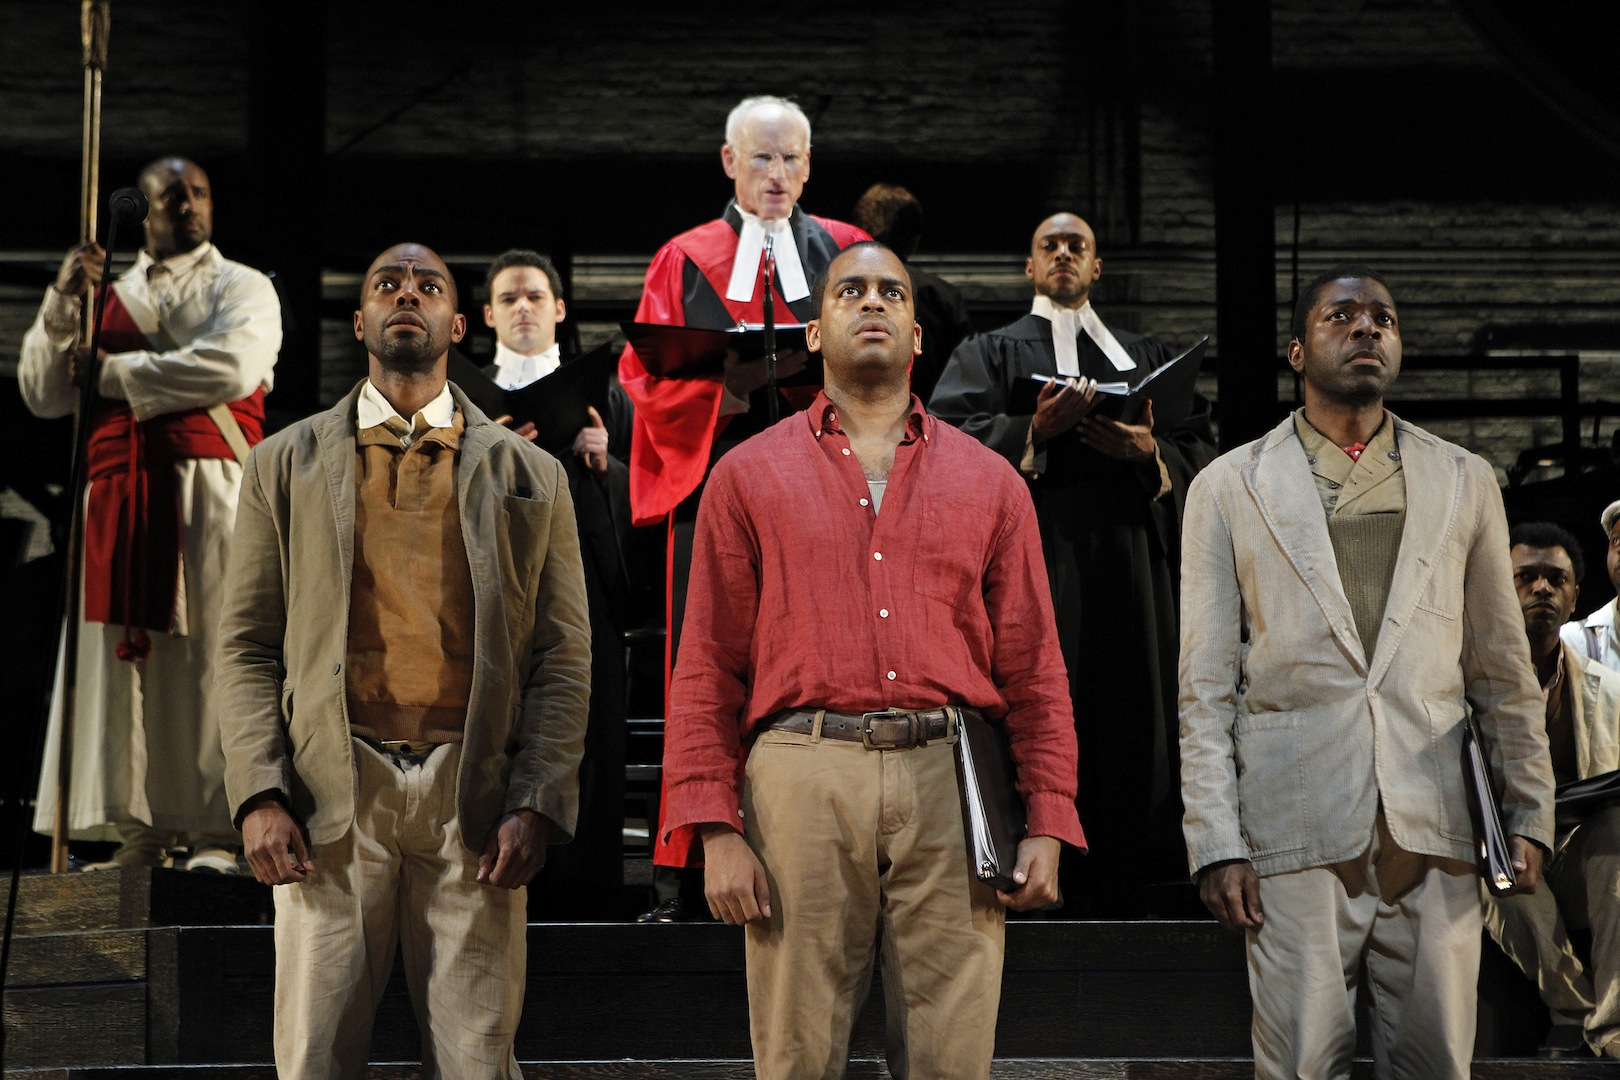 Absalom on Trial: LOST IN THE STARS at New York City Center Encores!, 2011.